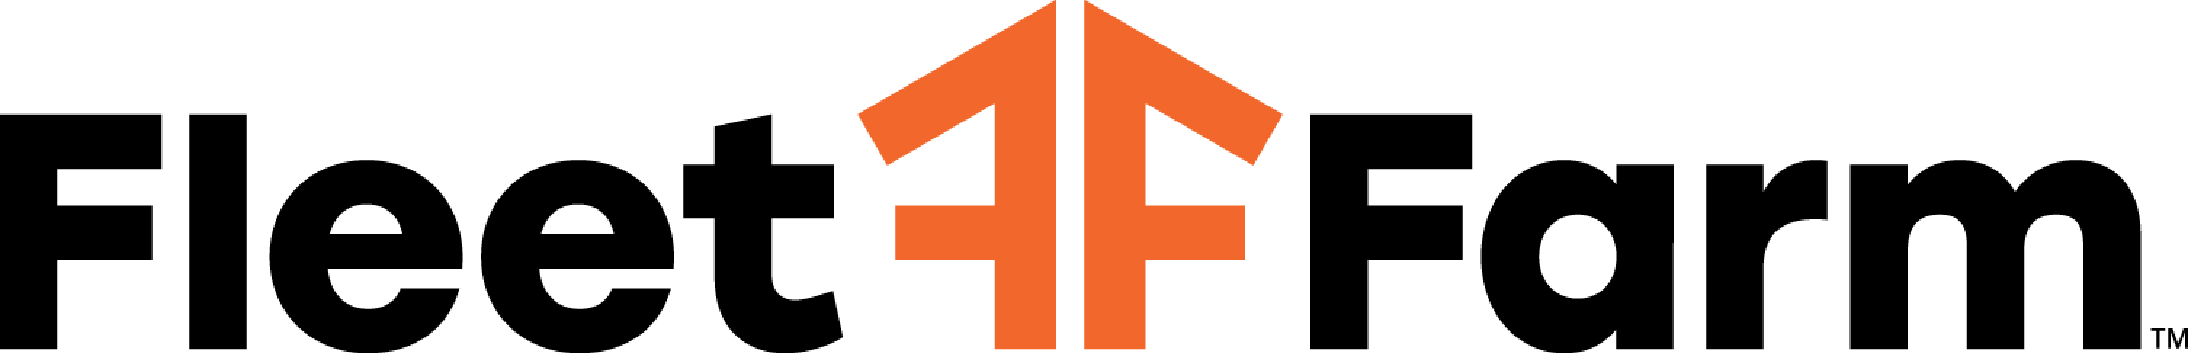 Fleet-Farm-Logo-Orange-Black